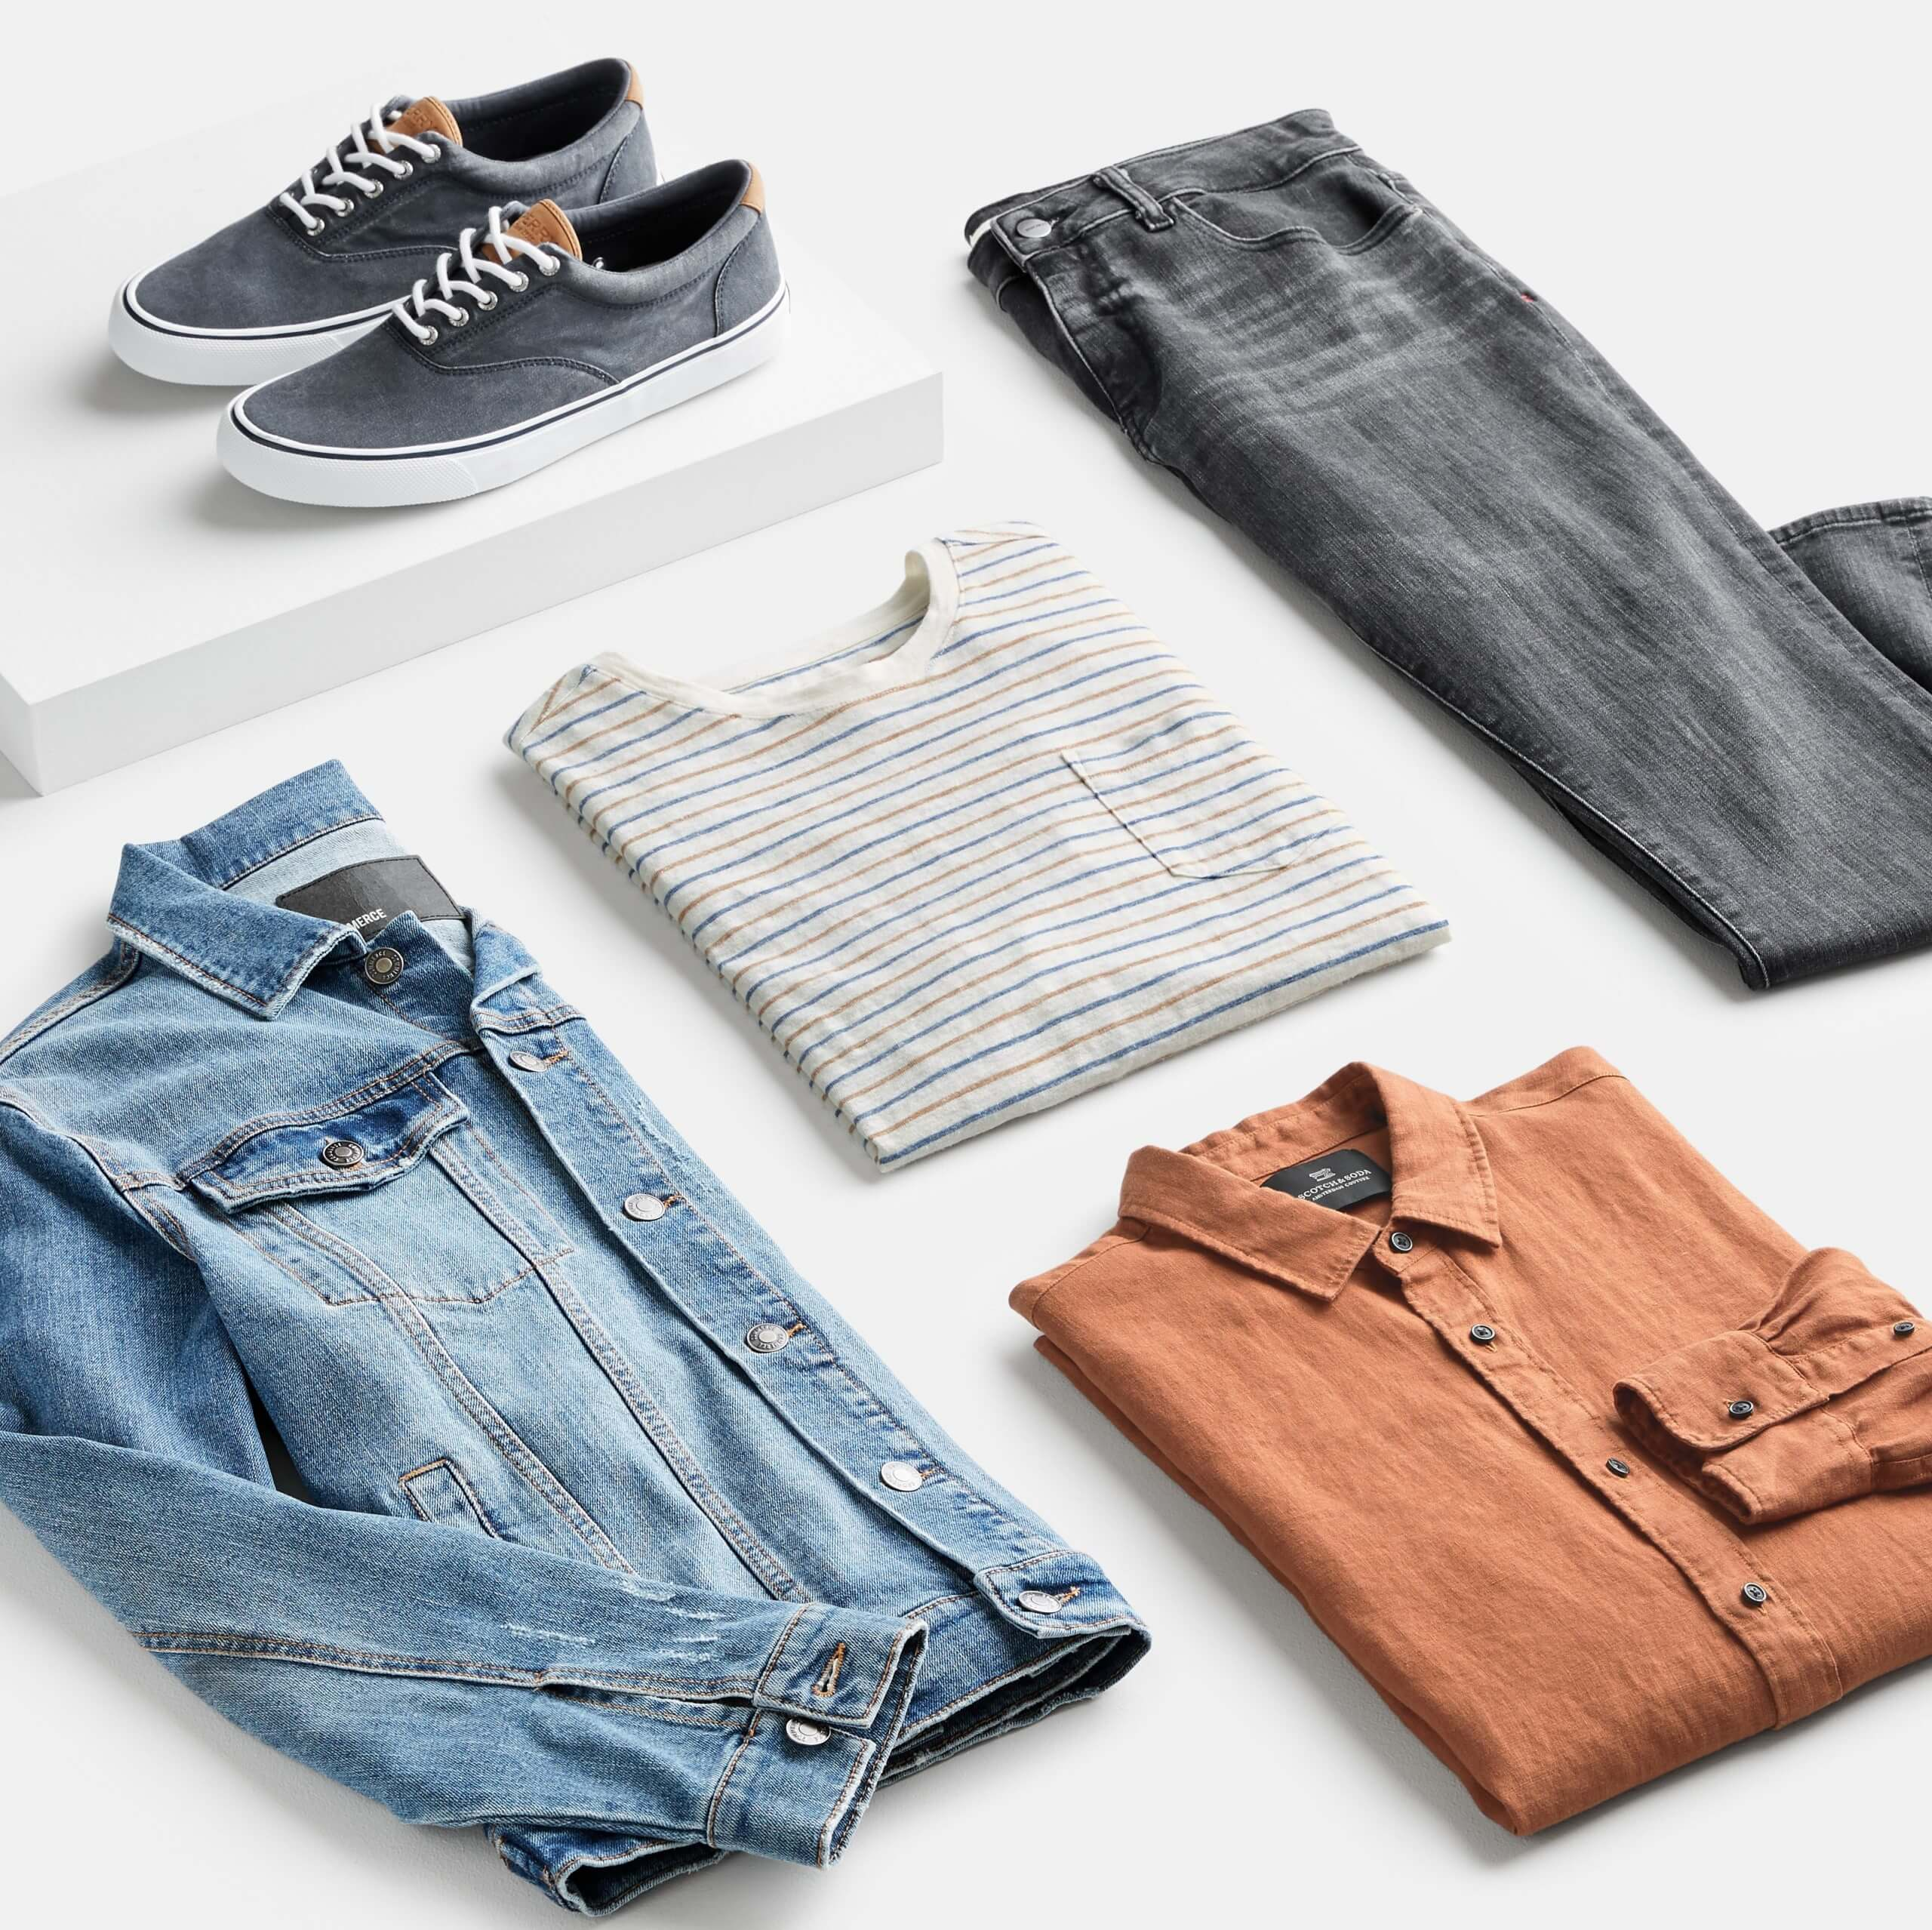 Stitch Fix jean jacket men's outfit laydown with blue jean jacket, grey lace-up canvas sneakers, grey jeans, white stripe pocket T-shirt and orange button-down shirt.